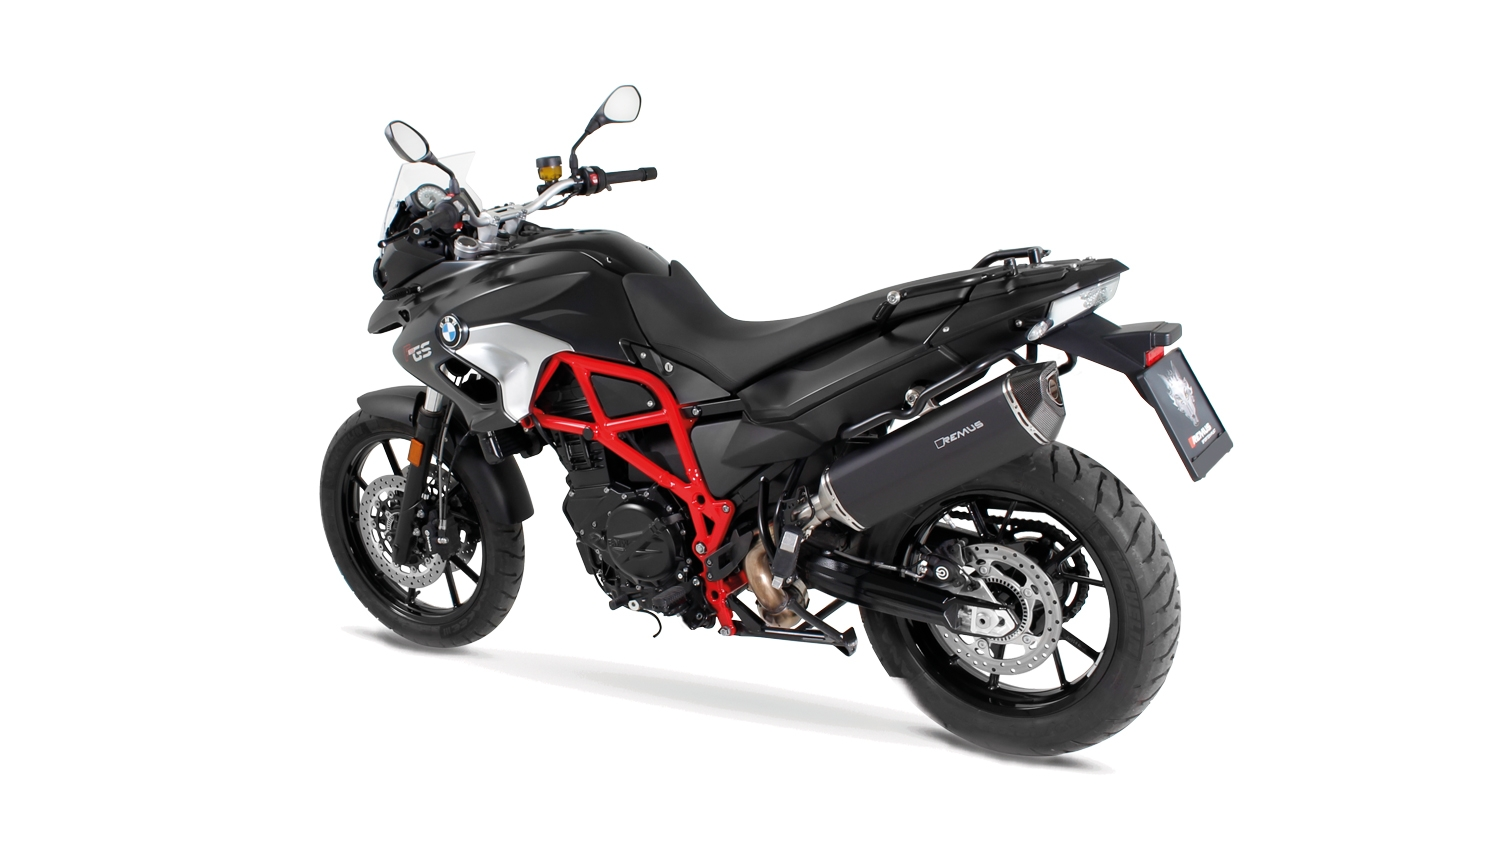 remus news bike info 14 17 bmw f 800 gs f 700 gs mod. Black Bedroom Furniture Sets. Home Design Ideas